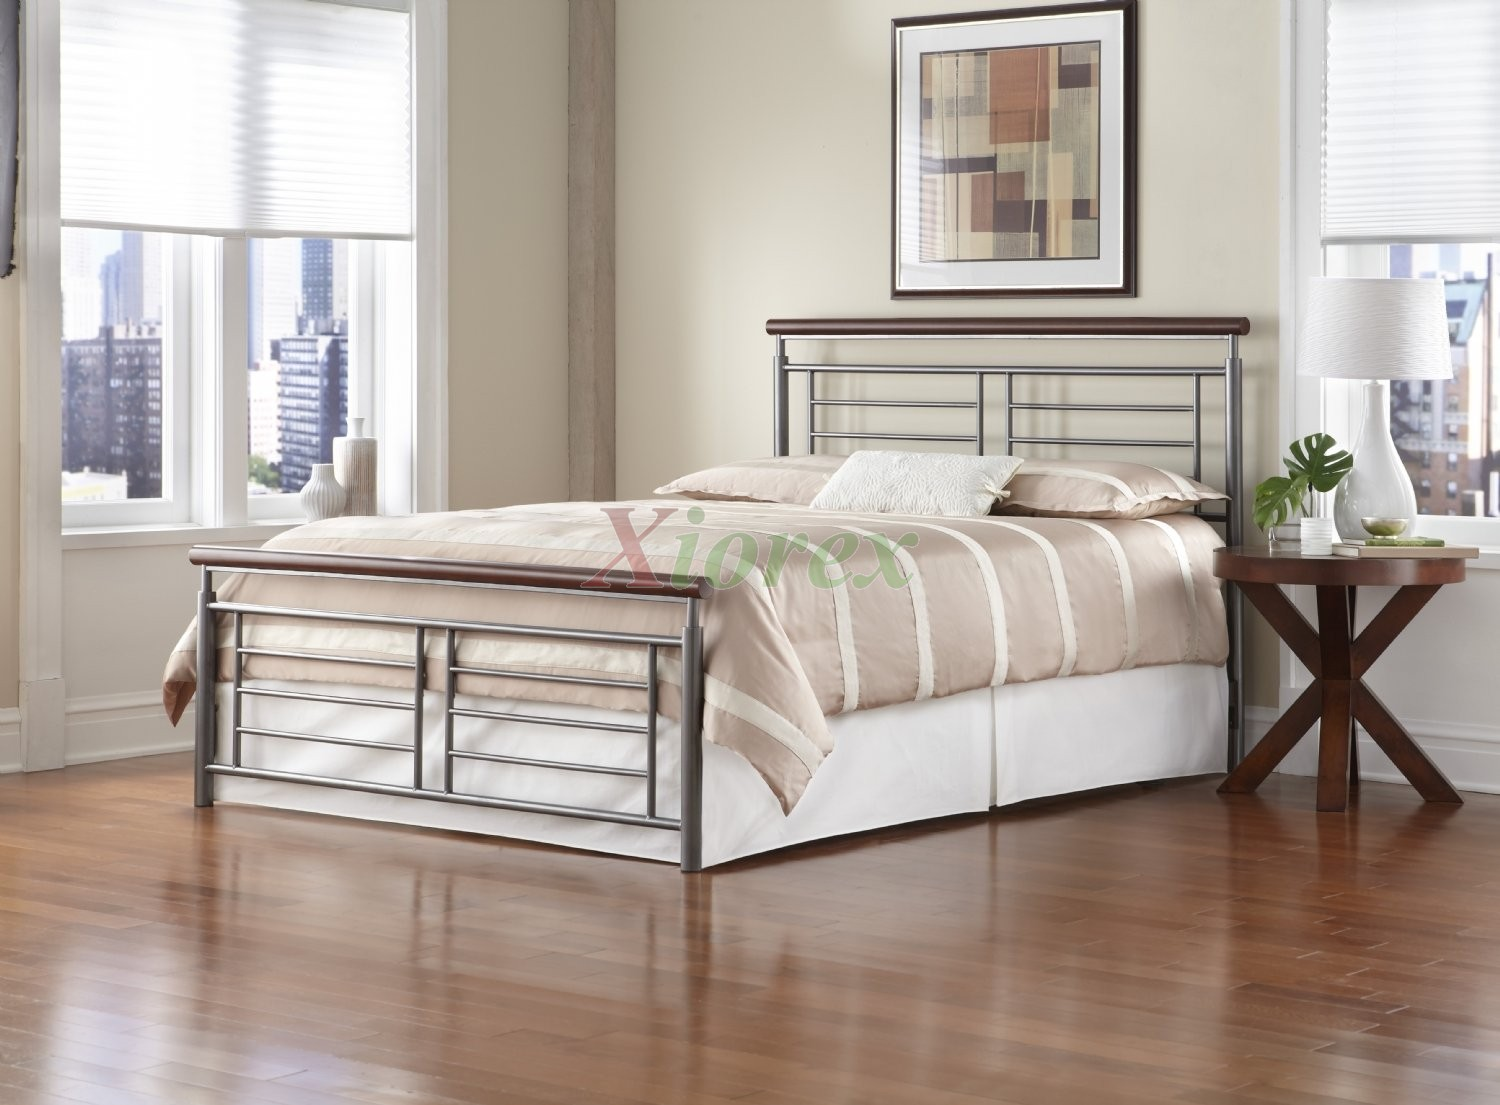 Fontane Bed W Cherry Metal/Silver Finish By Fashion Bed